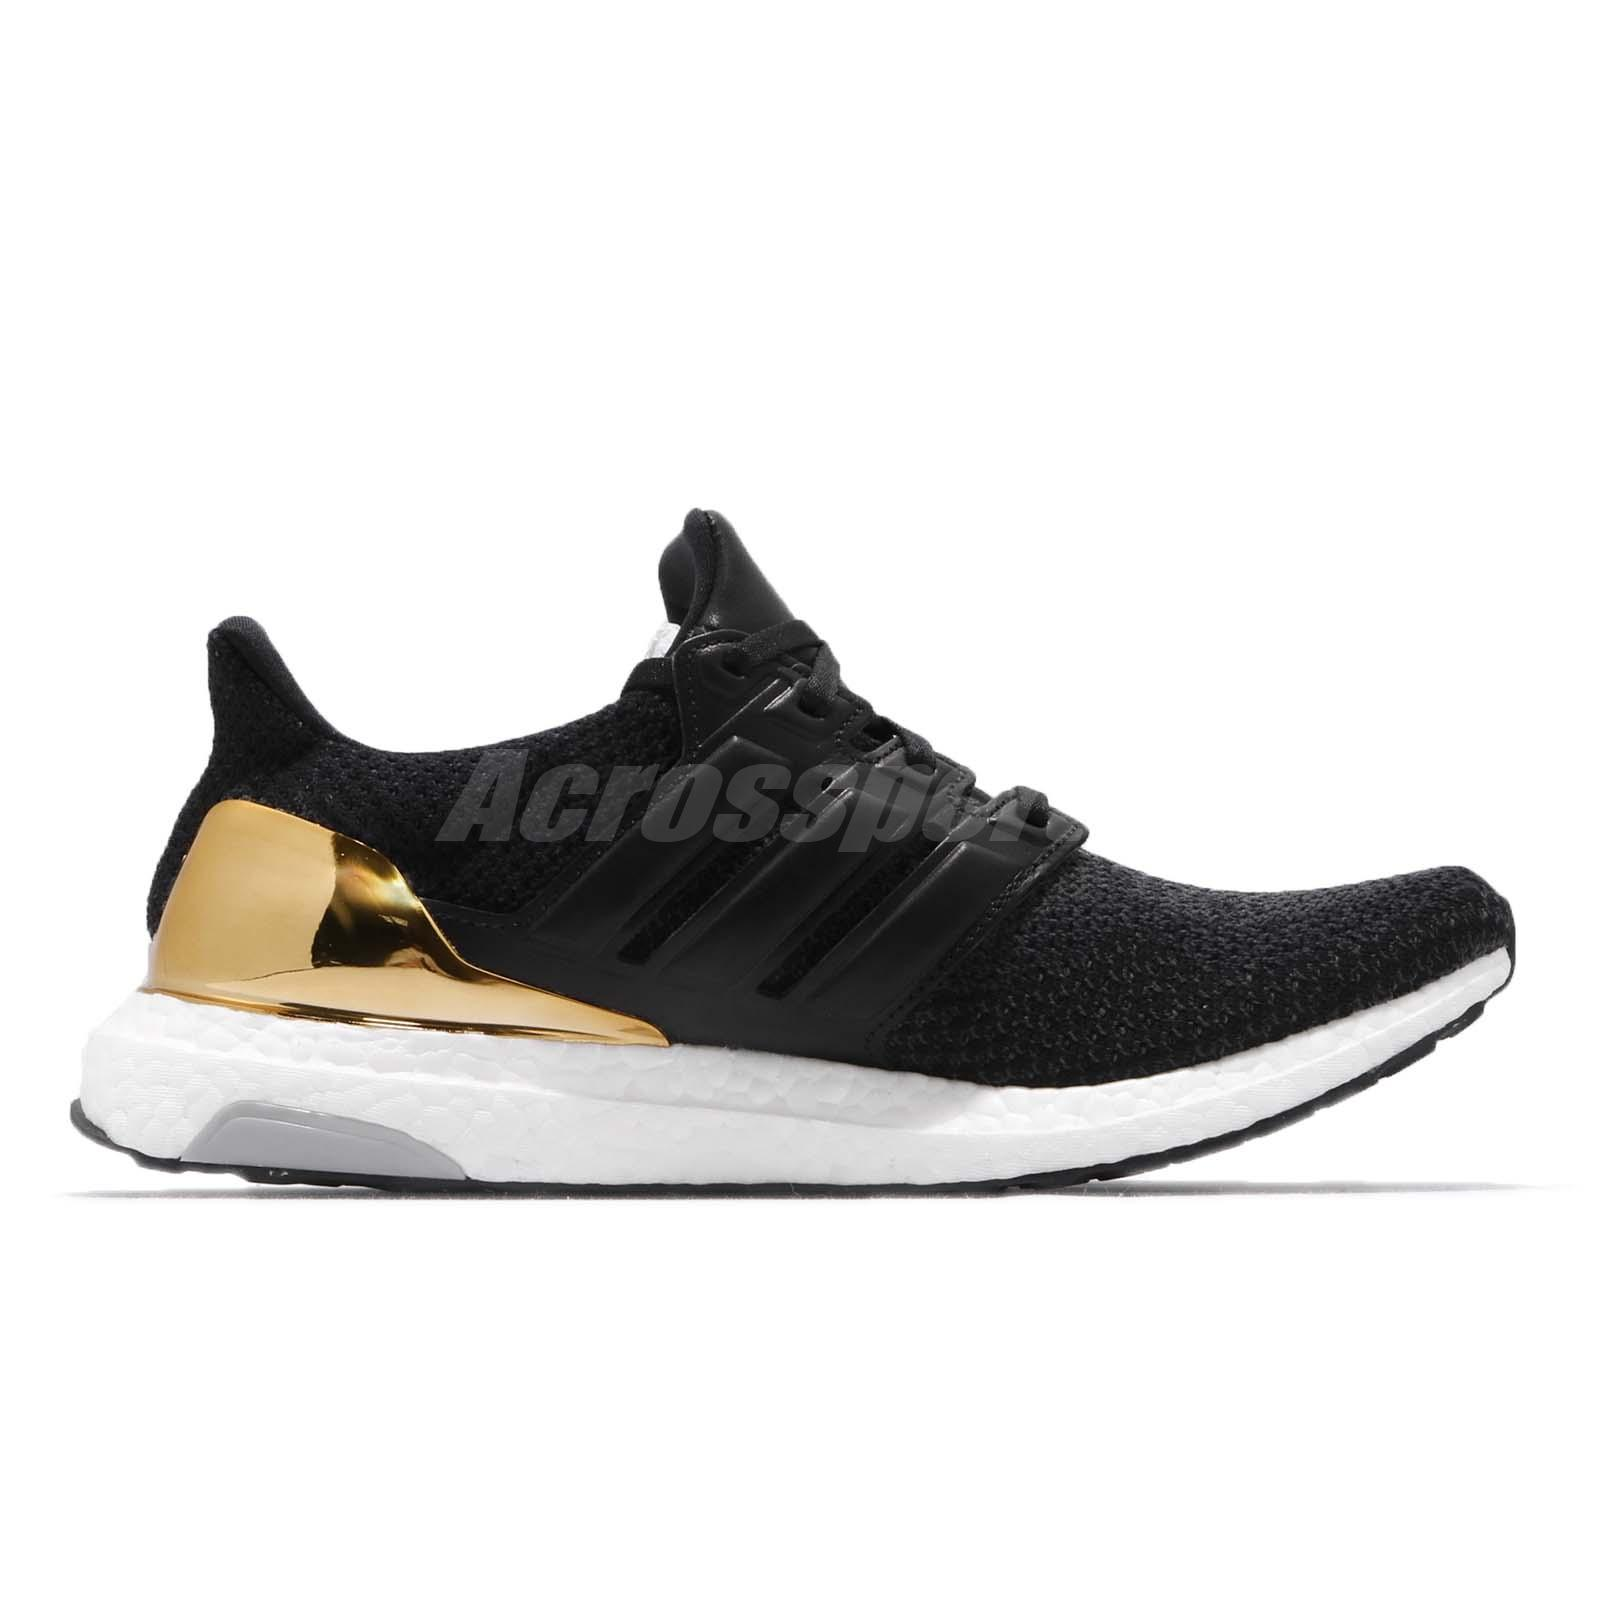 Adidas Gold Details Shoes Ltd Black Running Olympic About Medal Mens Ultraboost Womens Bb3929 76gyvYbf